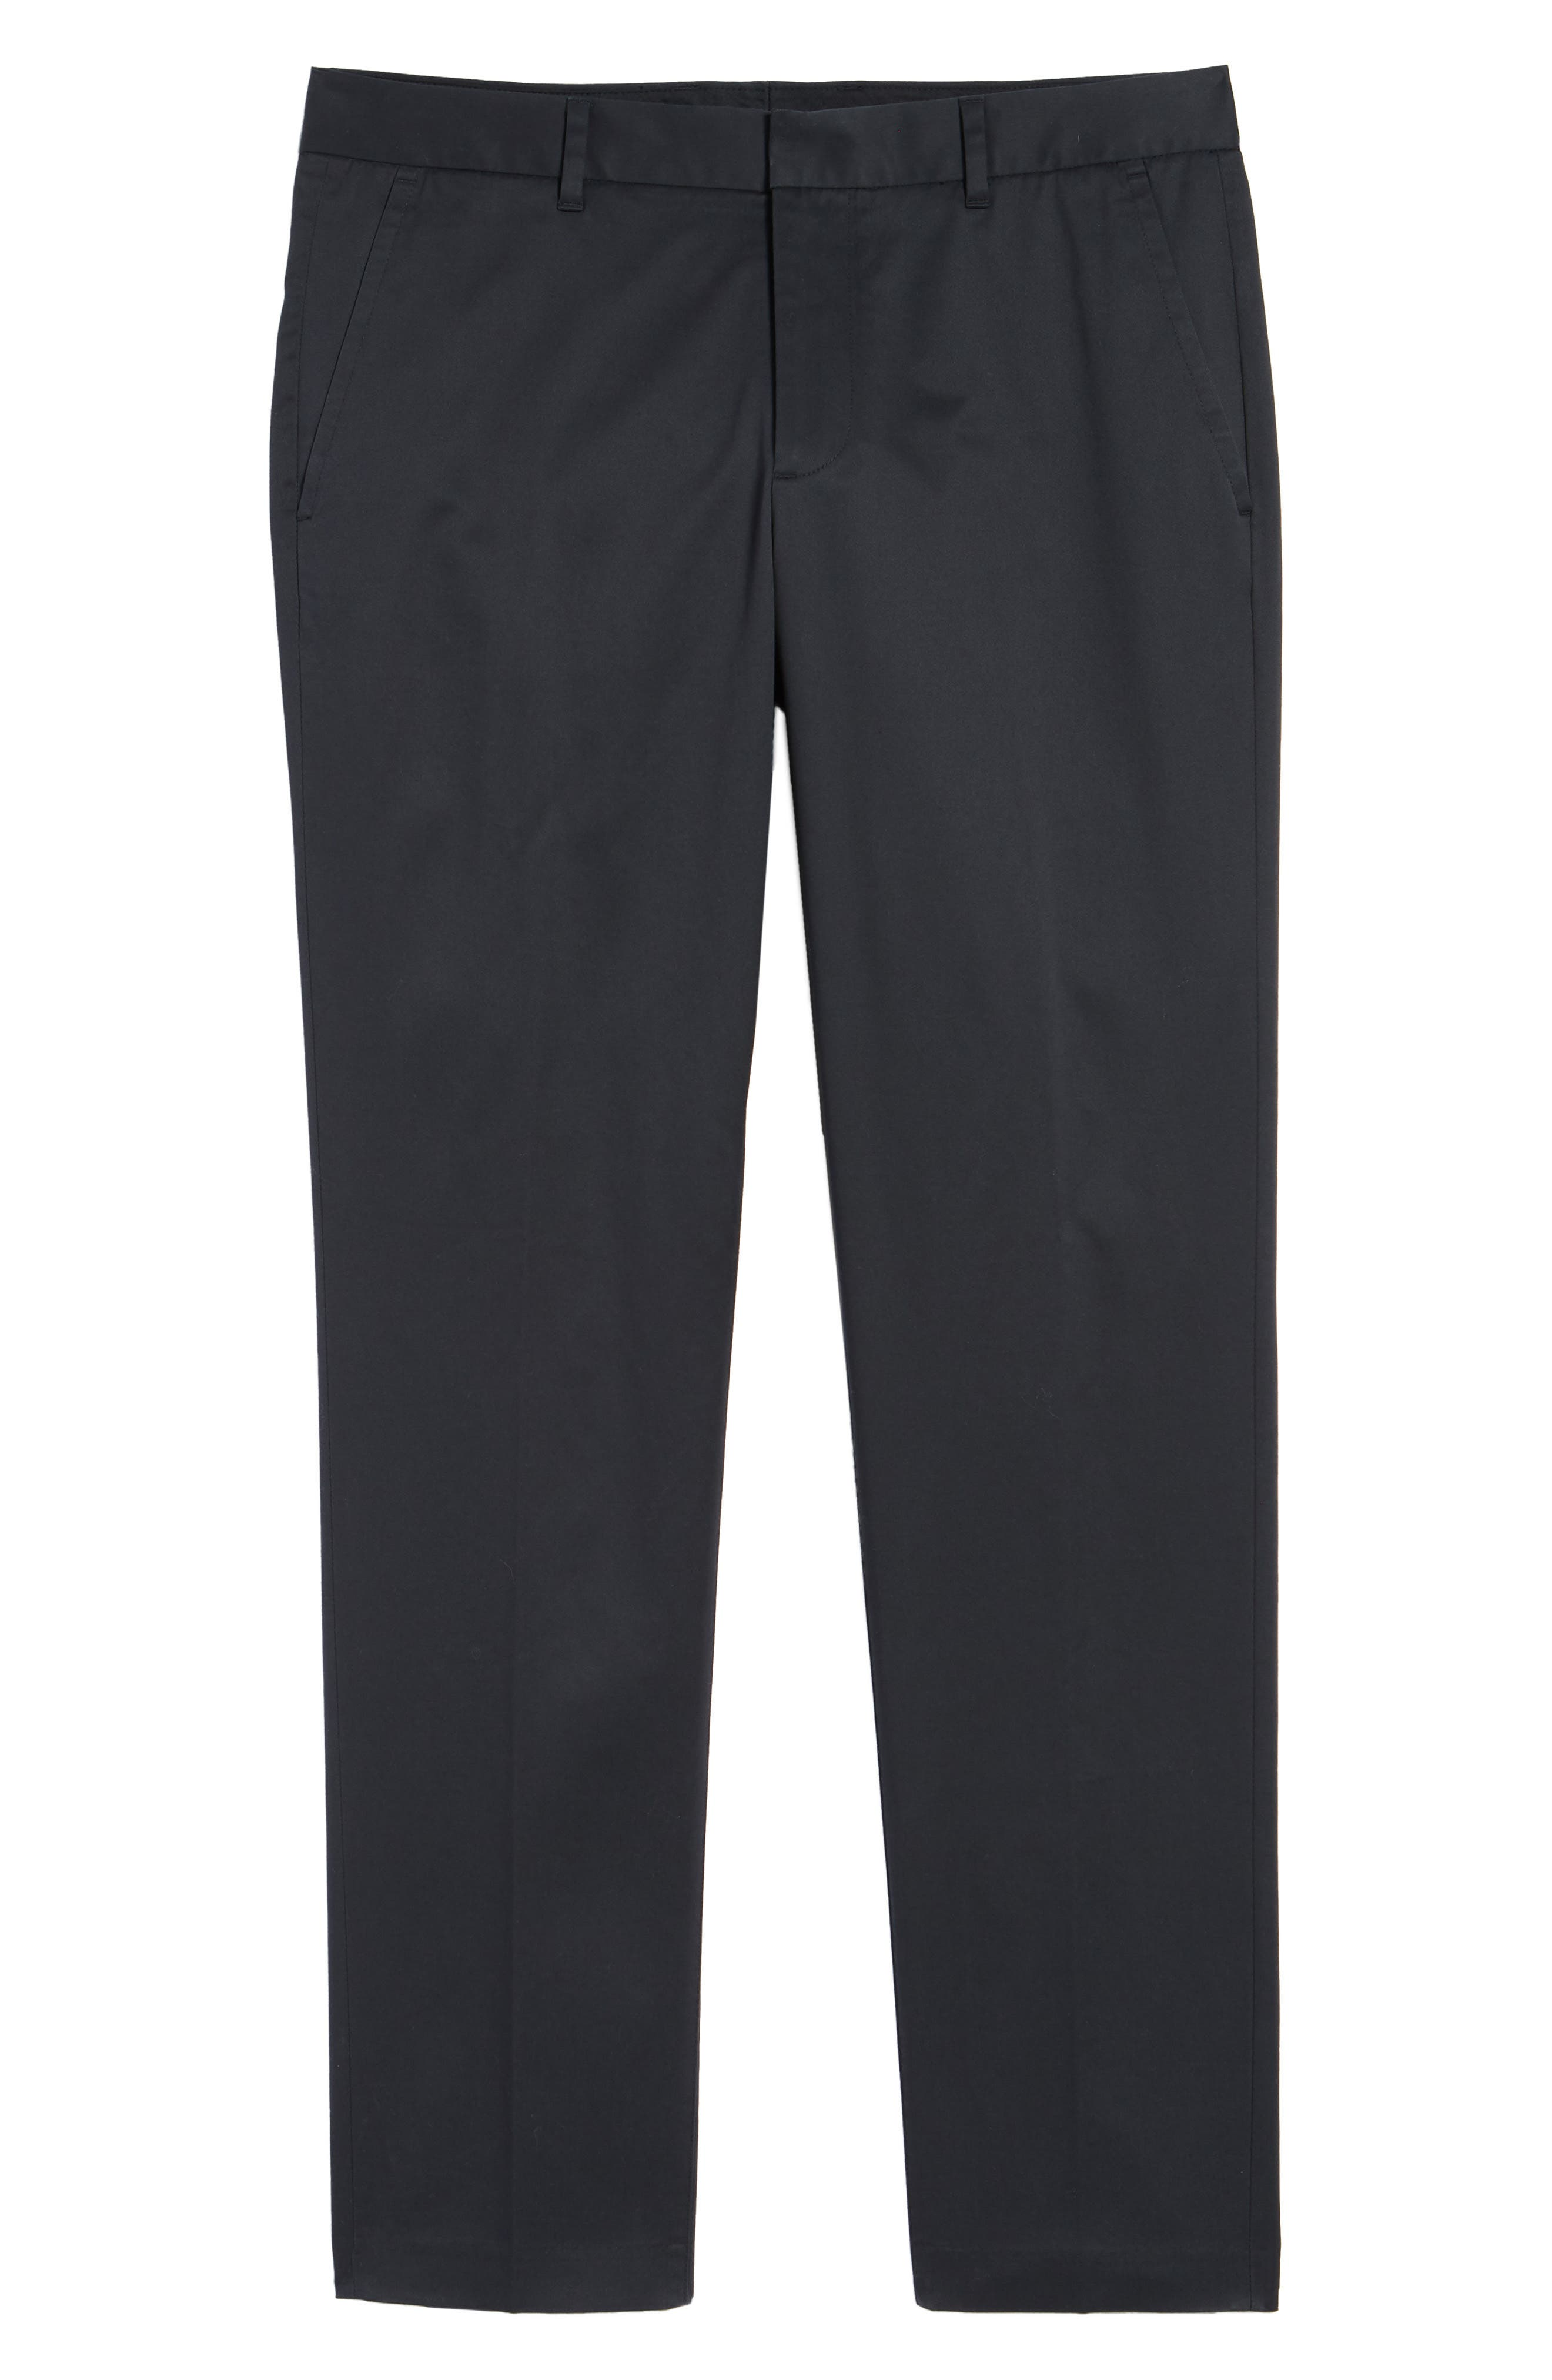 BONOBOS, Weekday Warrior Athletic Fit Stretch Dress Pants, Alternate thumbnail 6, color, TUESDAY BLACK